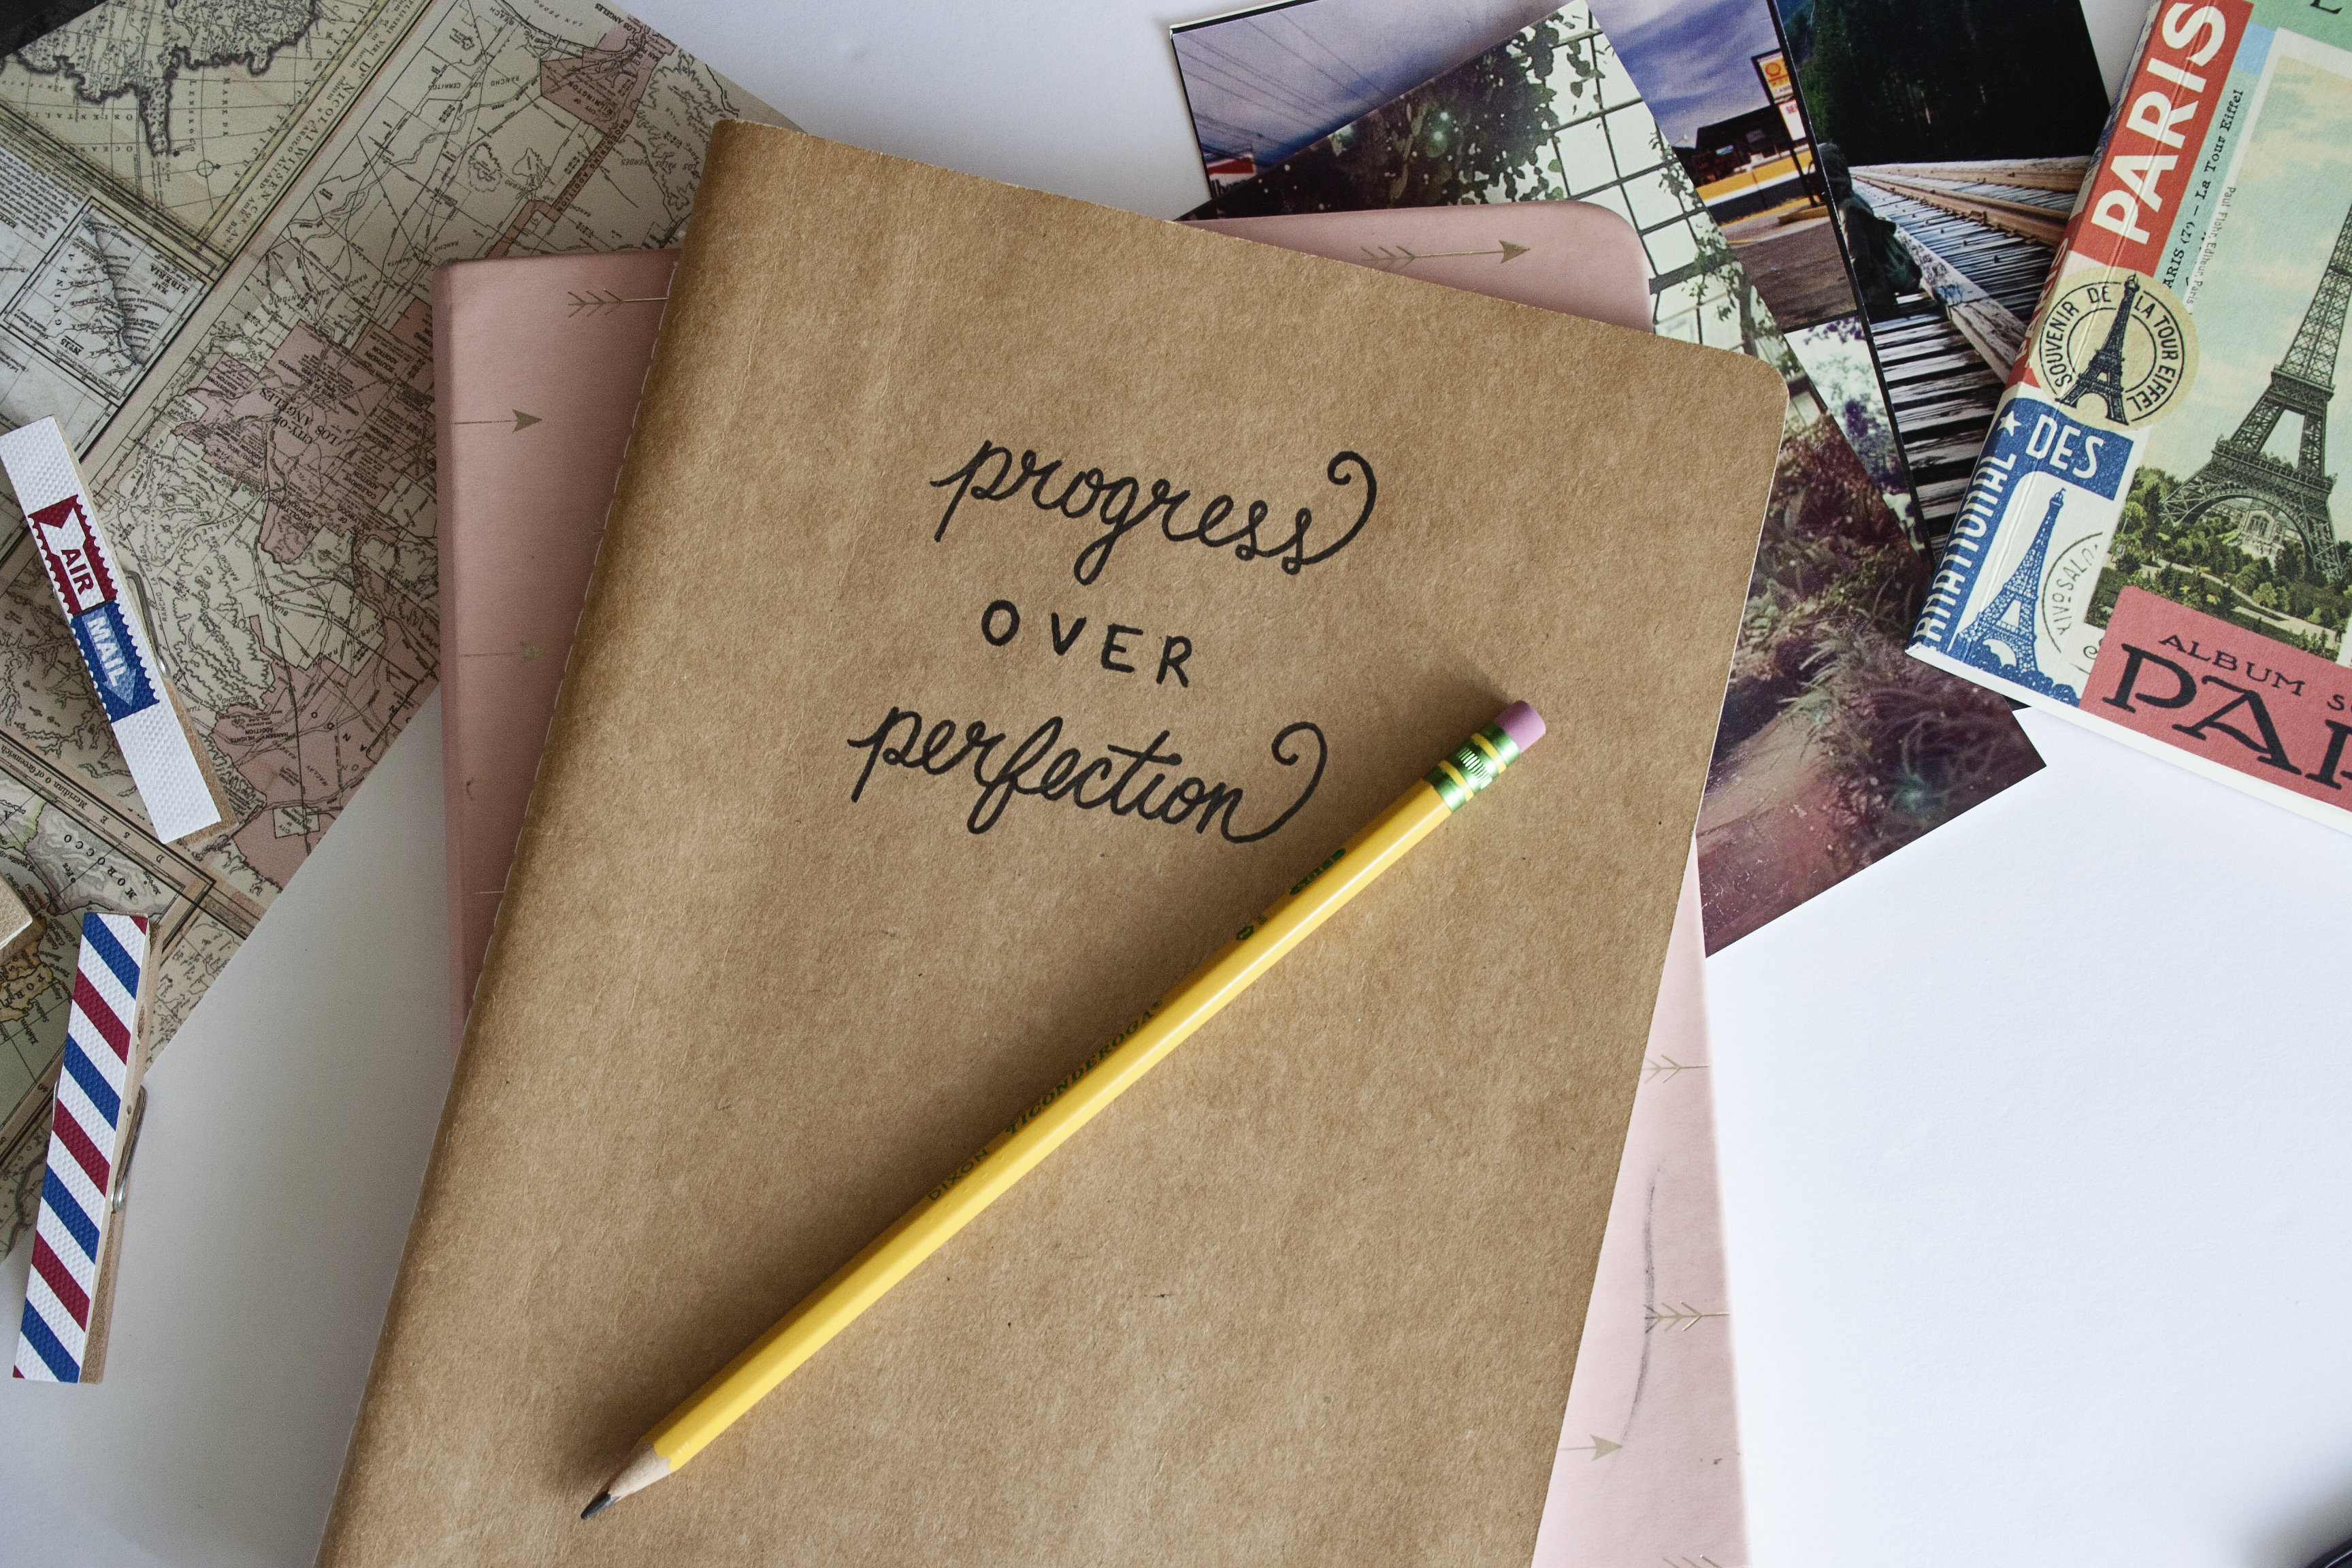 Progress over perfection on a notebook